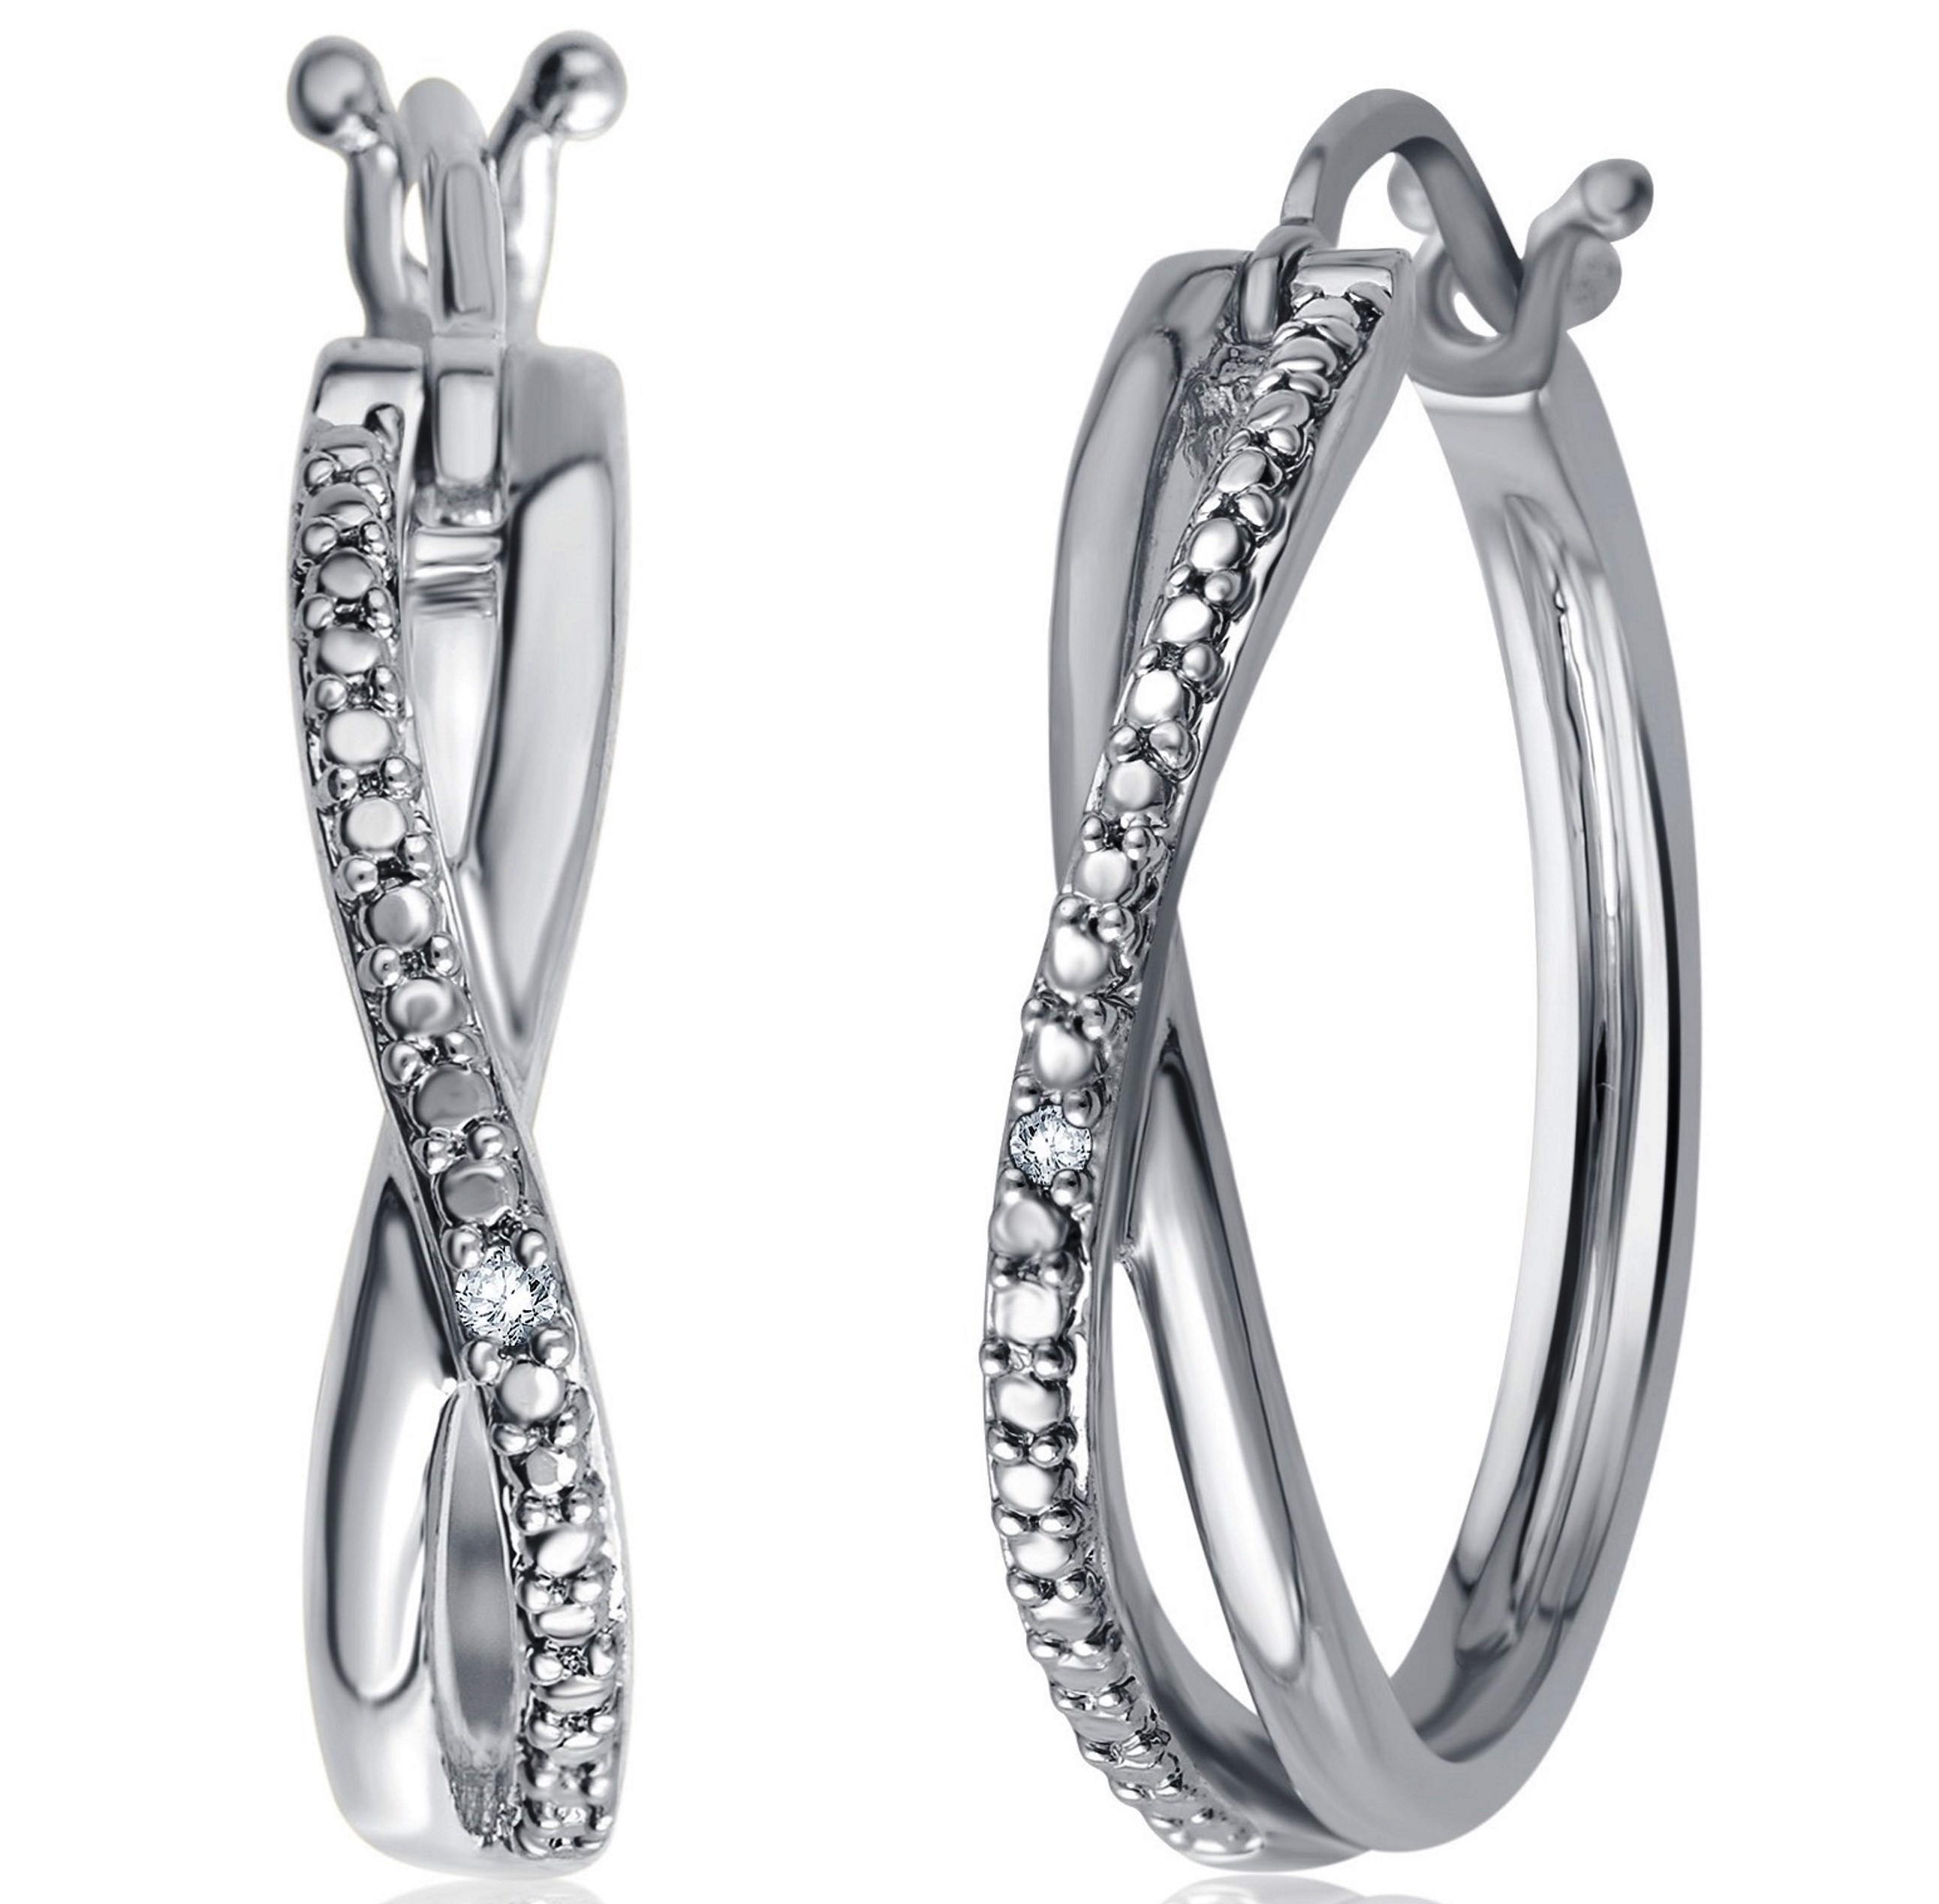 Genuine 0.01 Carat Natural Diamond Accent Twisted Hoop Earrings In 14K White Gold Plated